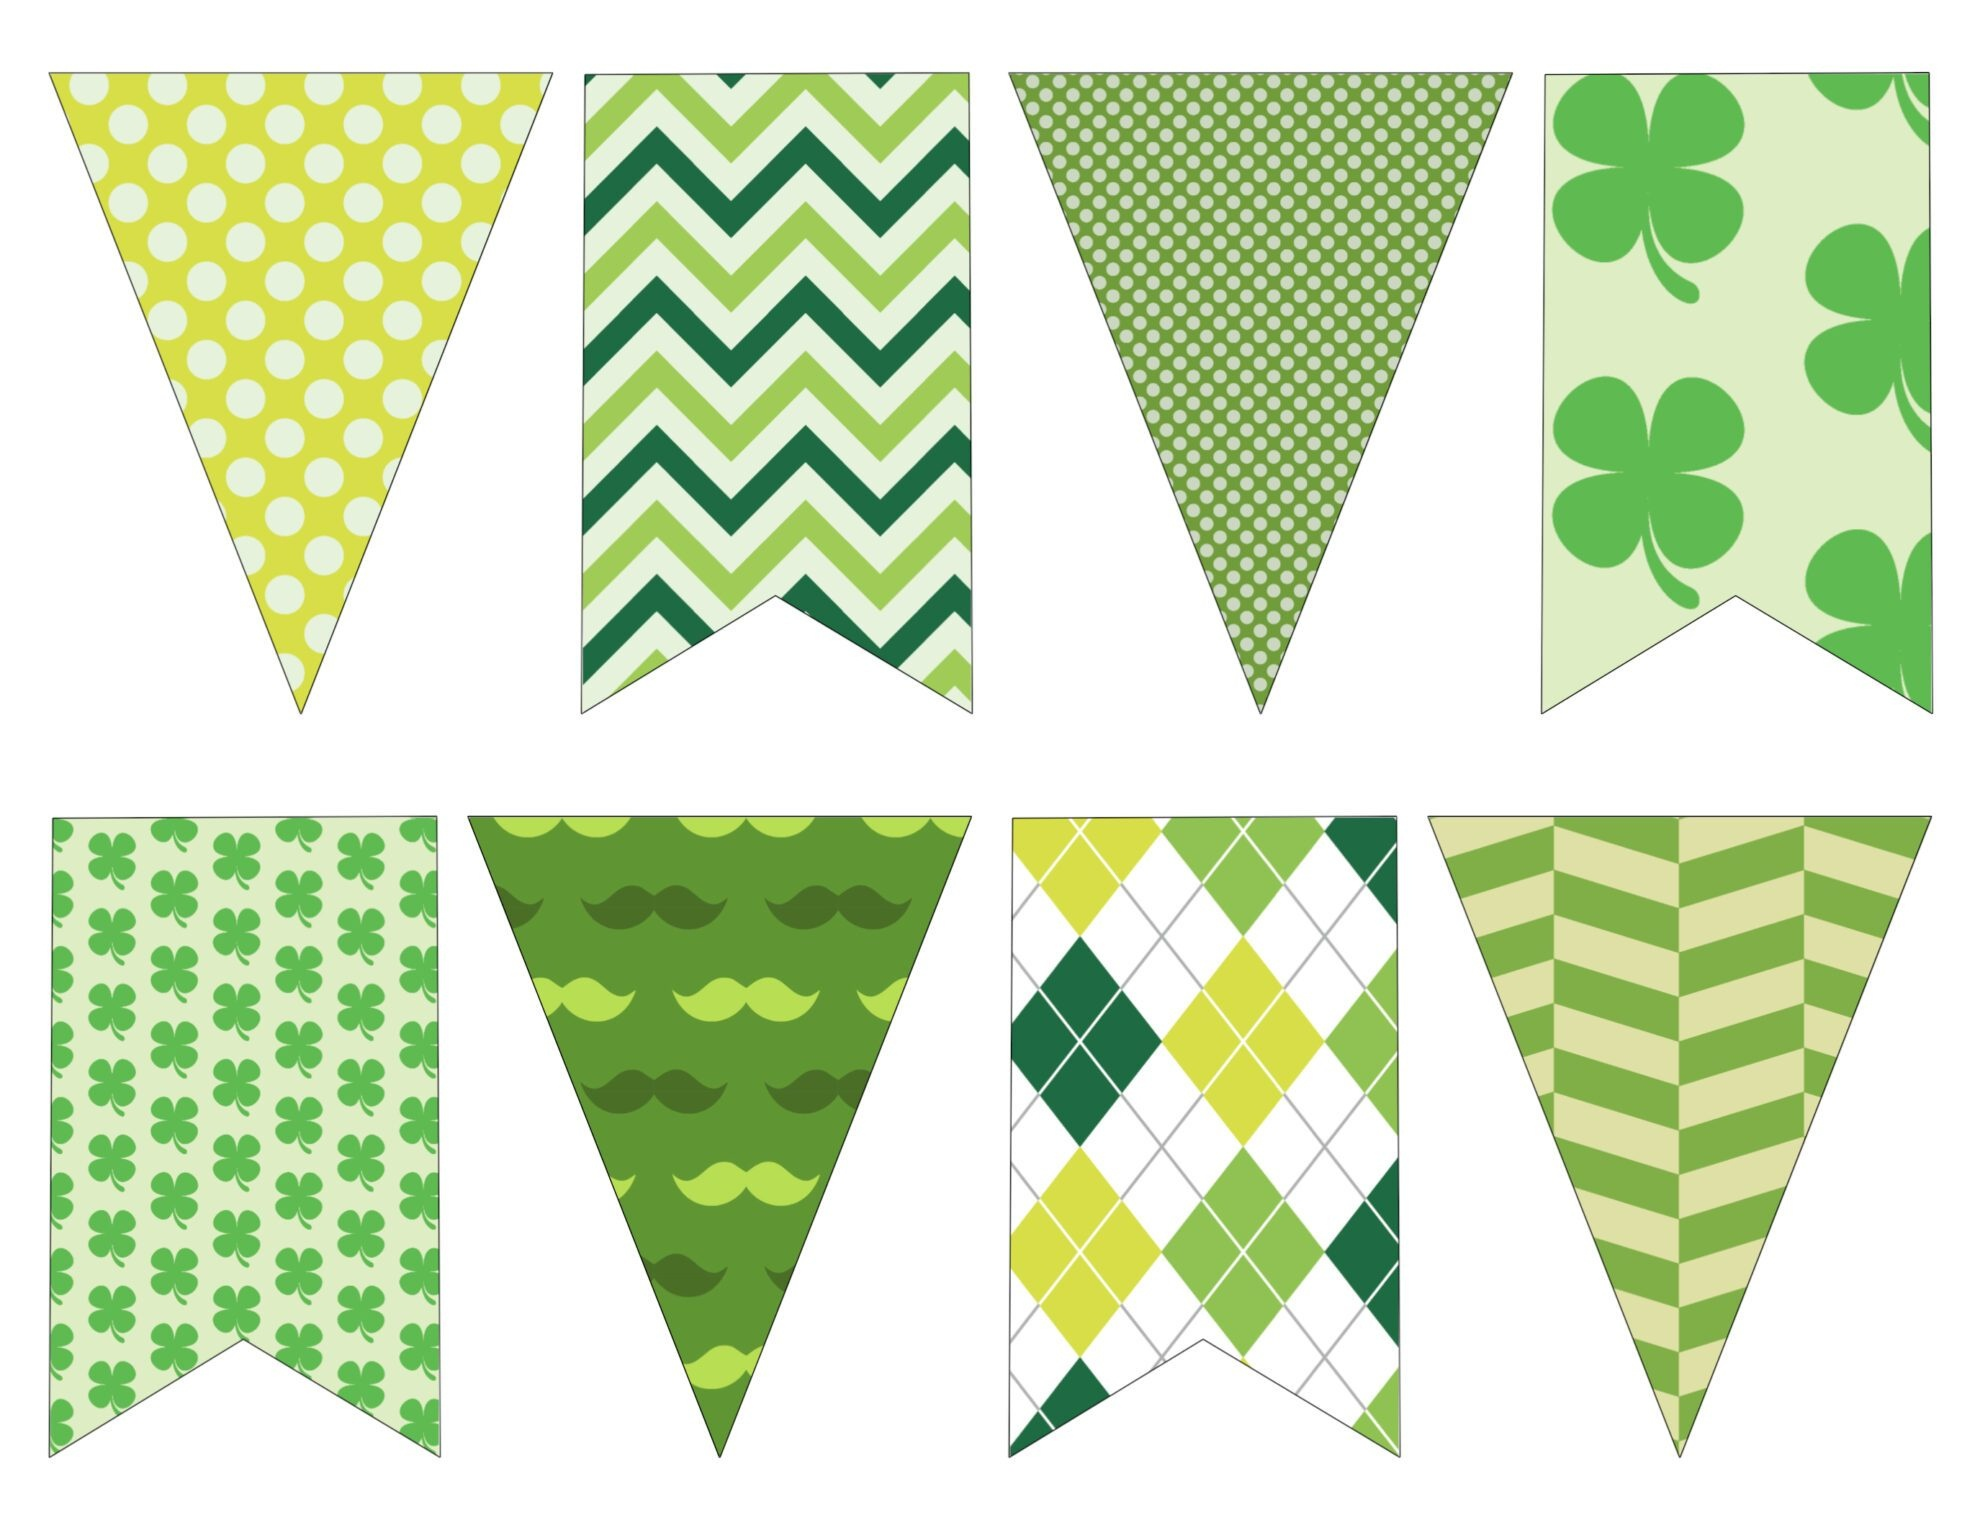 Diy St. Patrick's Day Decorations Printable Banner - Paper Trail Design - Free Printable St Patrick's Day Banner